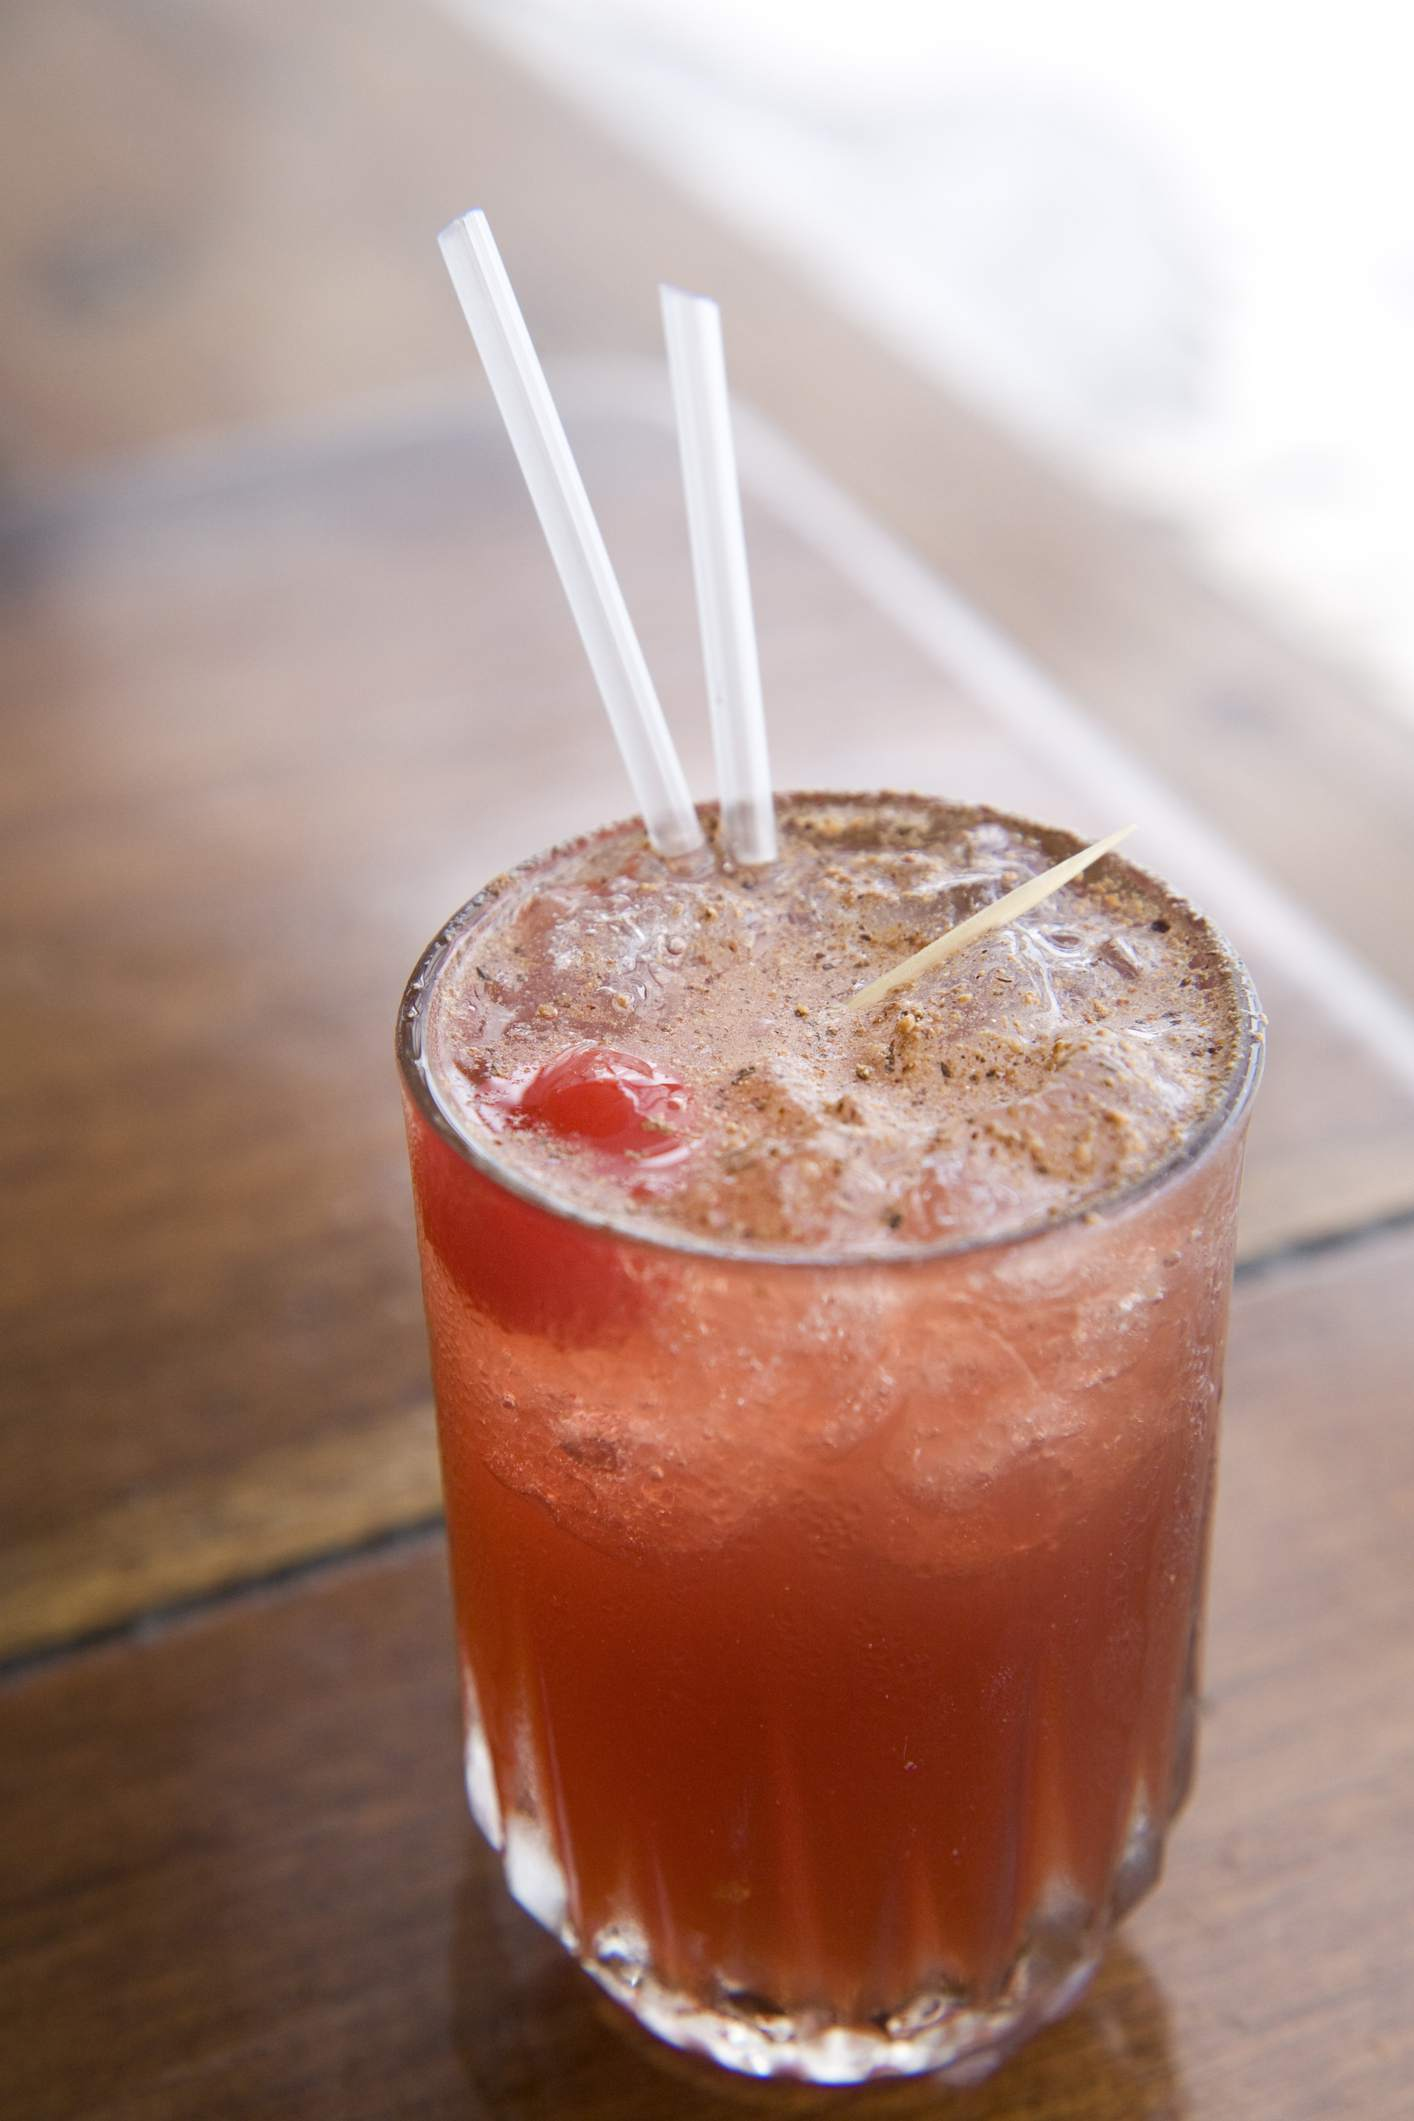 Classic rum punch sprinkled with nutmeg